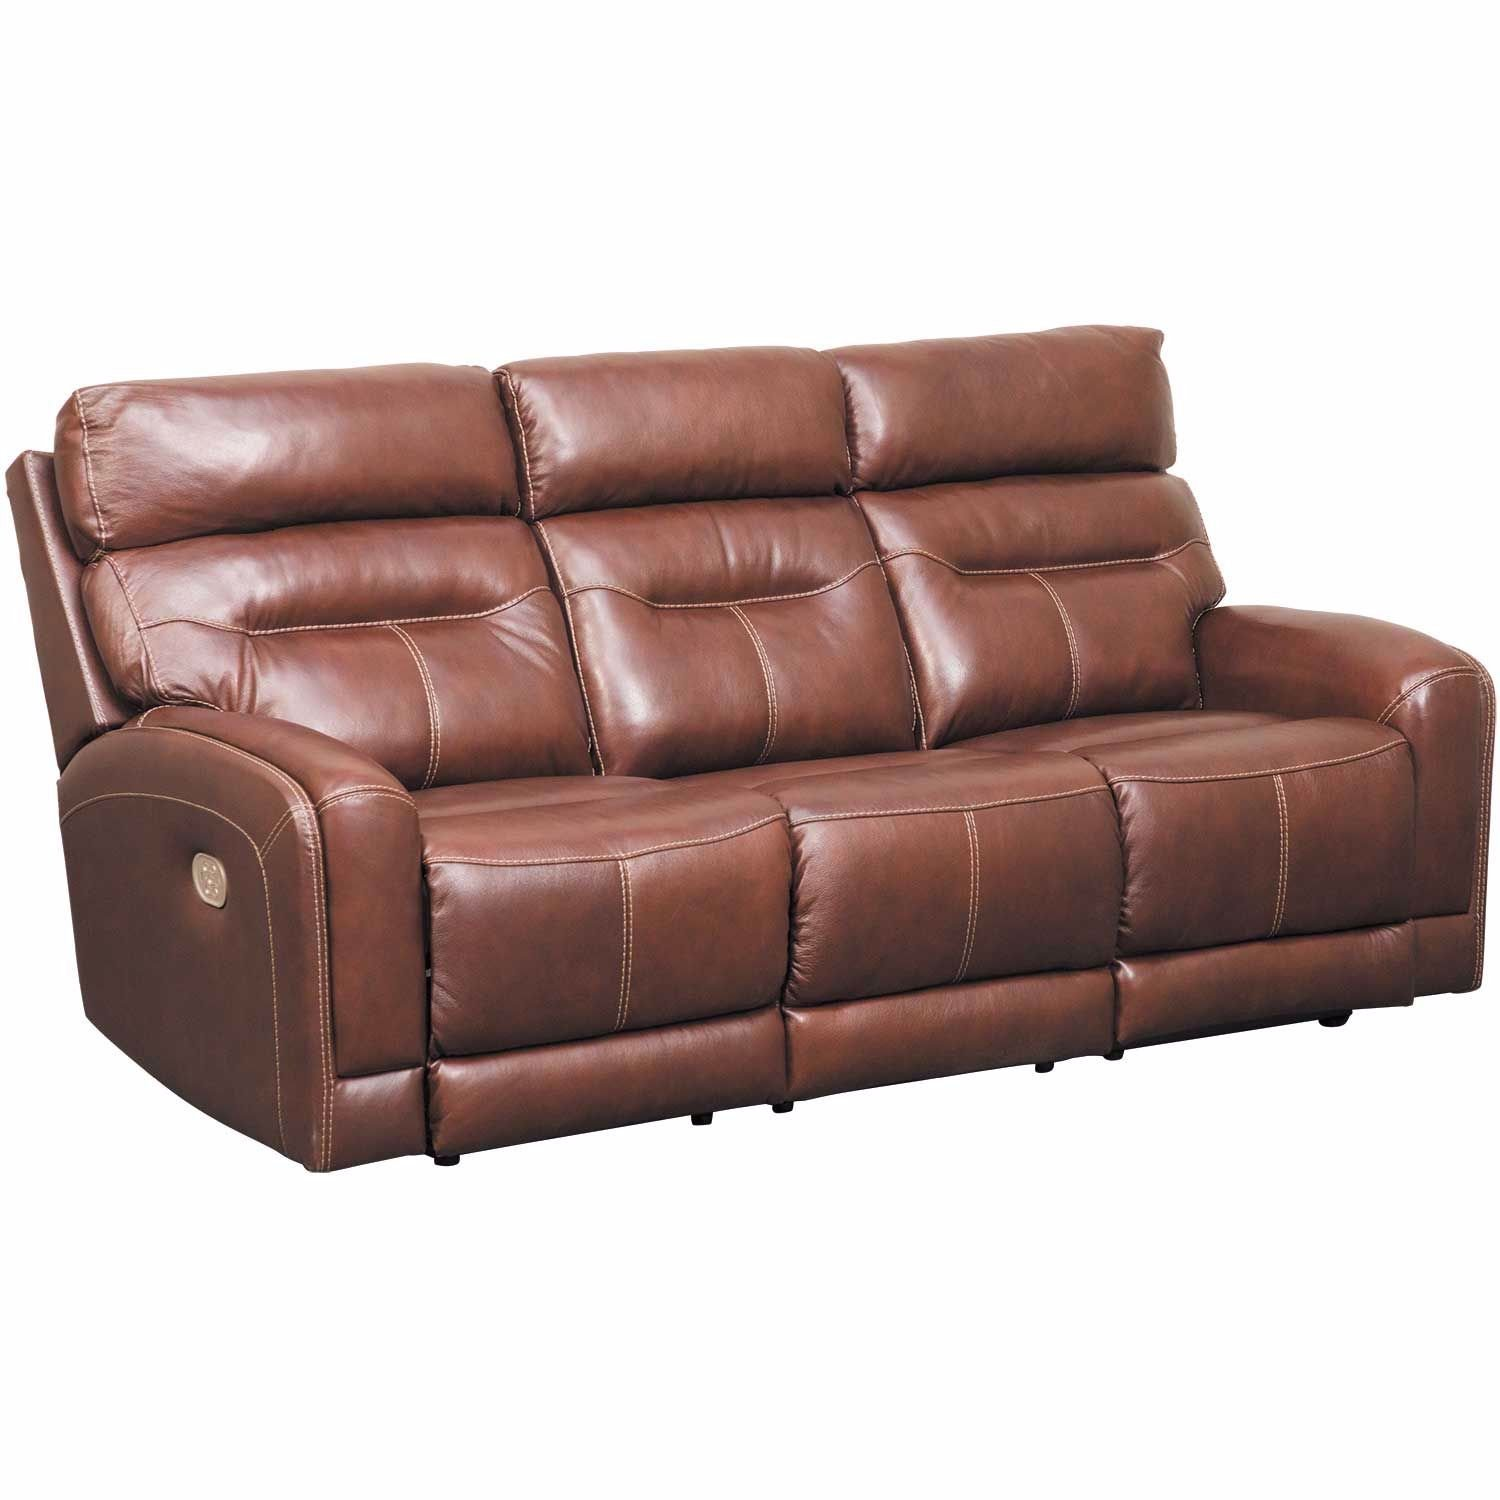 Picture of Sessom Leather Power Reclining Sofa with Adjustable Headrest and Lumbar Support